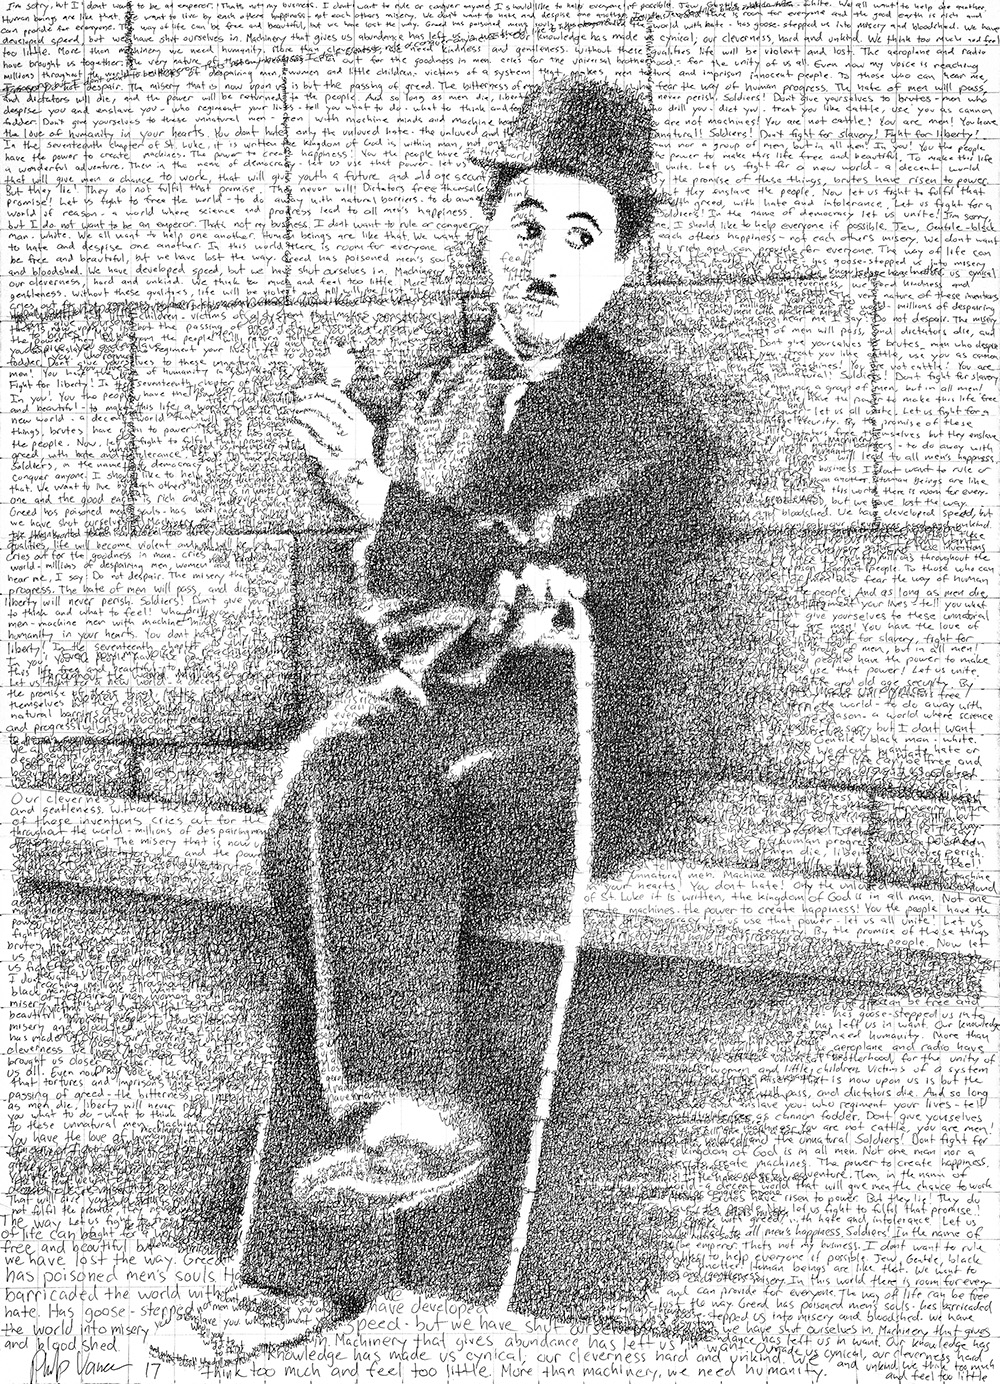 """""""The way of life can be free and beautiful, but we have lost the way."""" - Charlie Chaplin in His Own Words (2017)Ink on Watercolor Paper, 22x30in"""